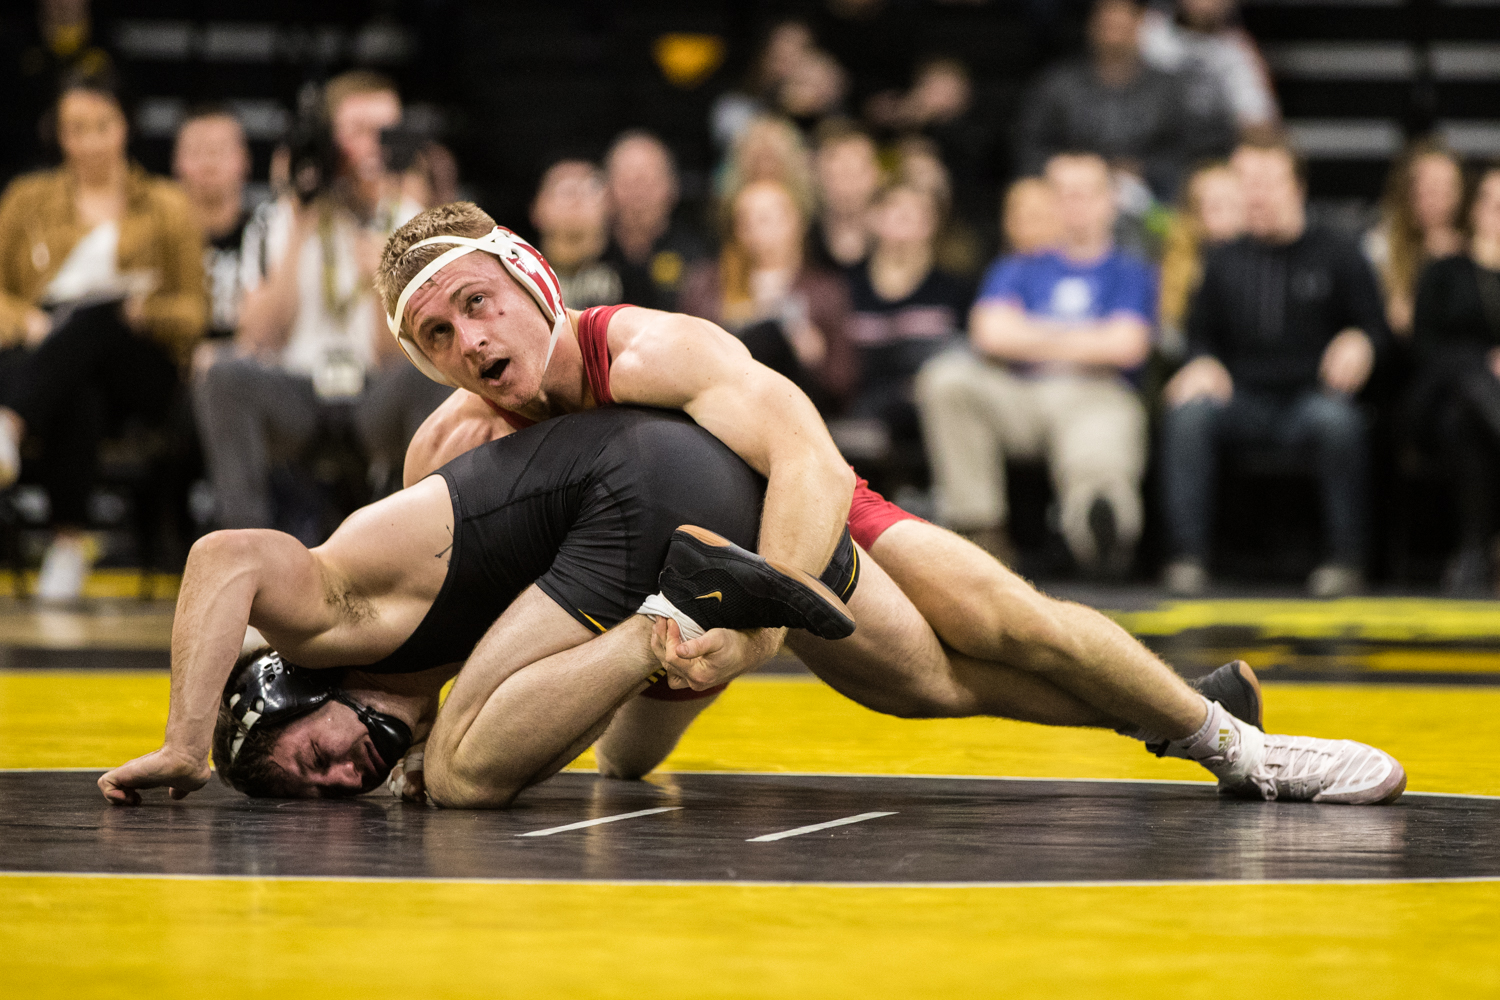 Iowa%27s+Jeren+Glosser+wrestles+Indiana%27s+Jake+Danishek+during+a+wrestling+match+between+Iowa+and+Indiana+at+Carver-Hawkeye+Arena+on+Friday%2C+February+15%2C+2019.+The+Hawkeyes%2C+celebrating+senior+night%2C+defeated+the+Hoosiers+37-9.